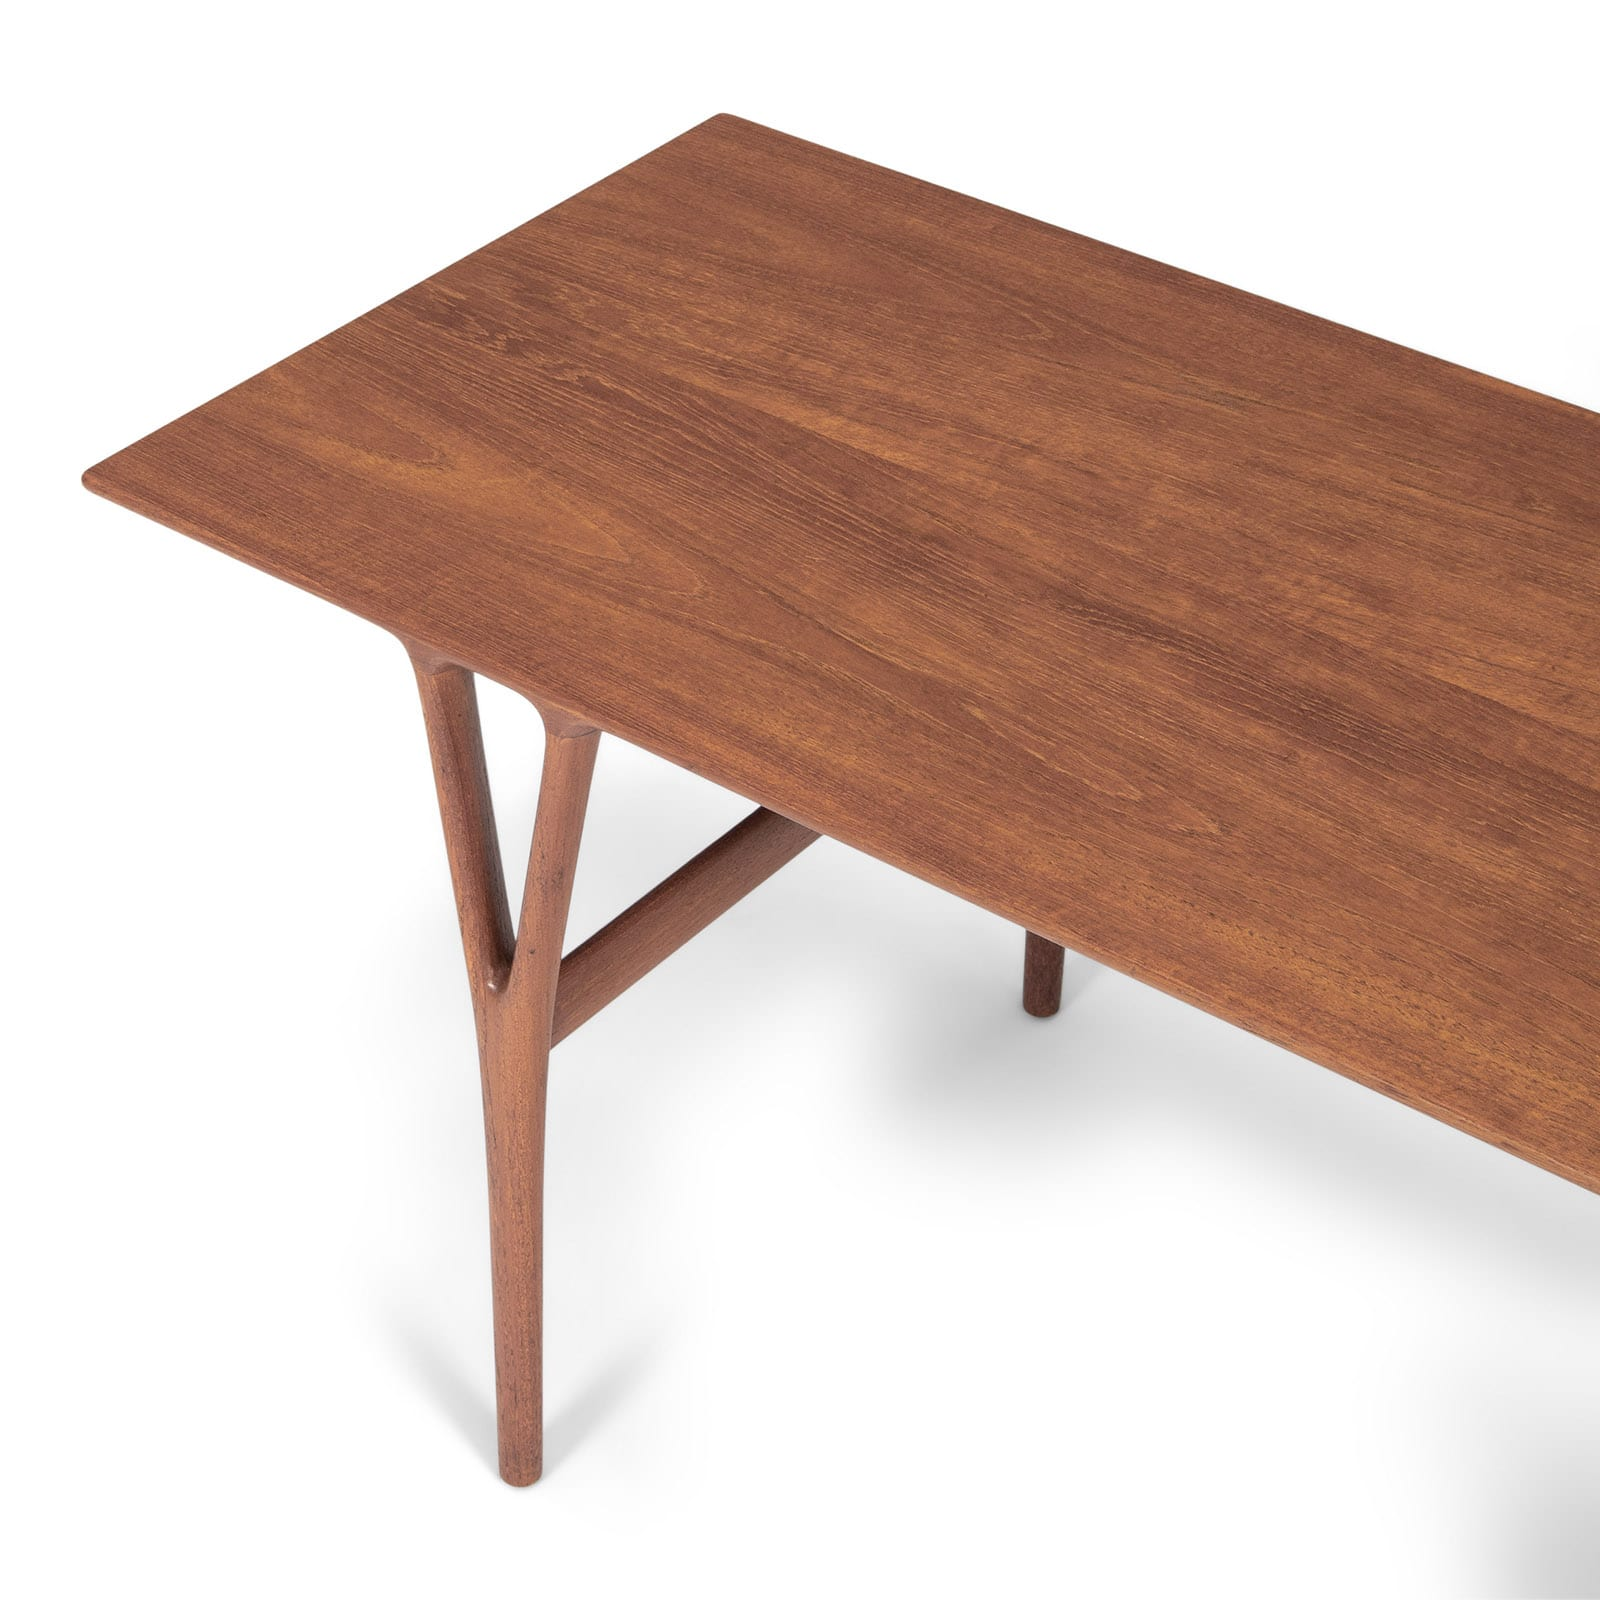 A coffee table